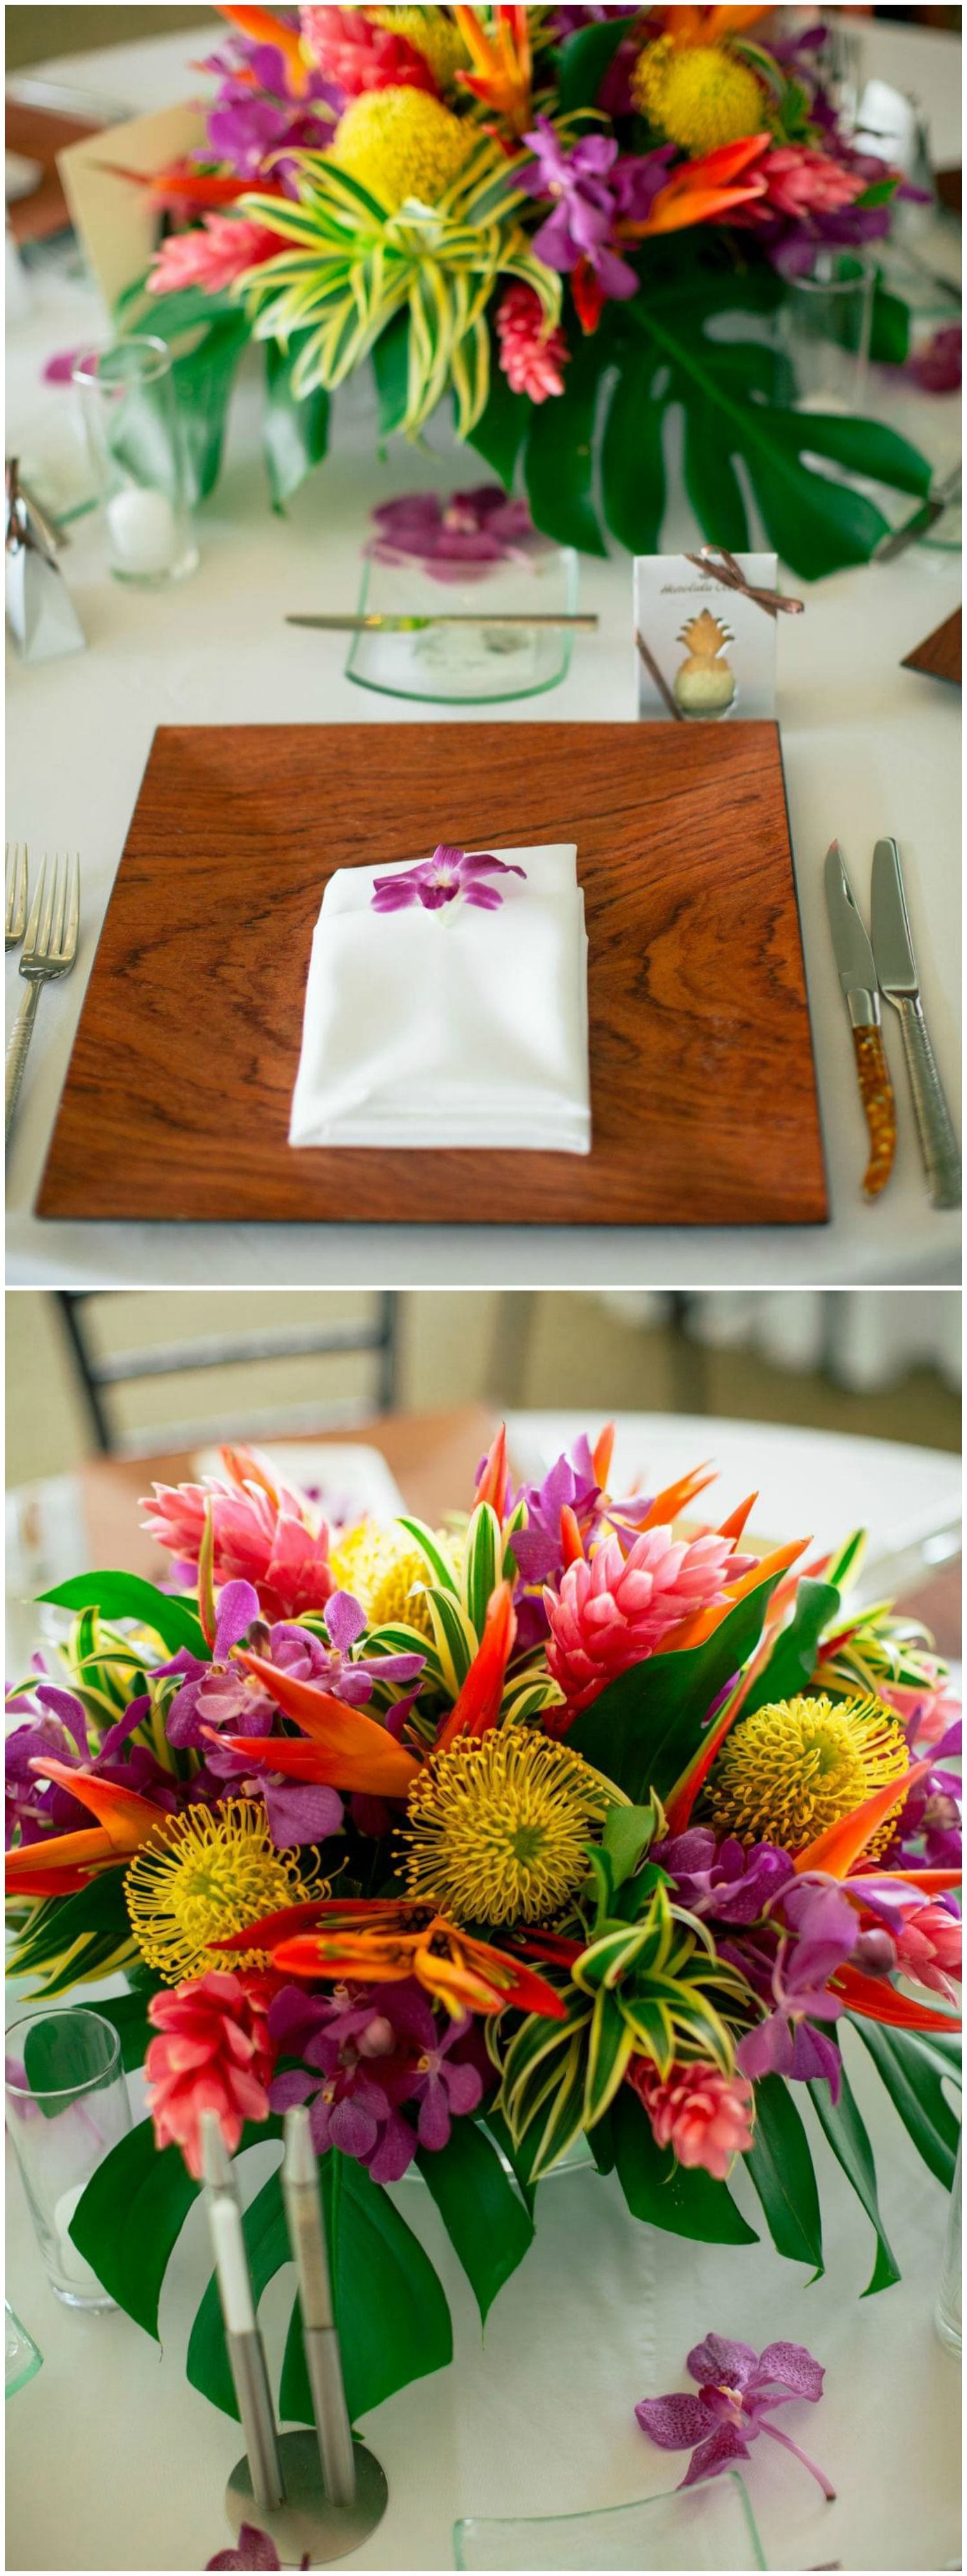 Hawaii wedding, wooden plate, tropical flowers, place